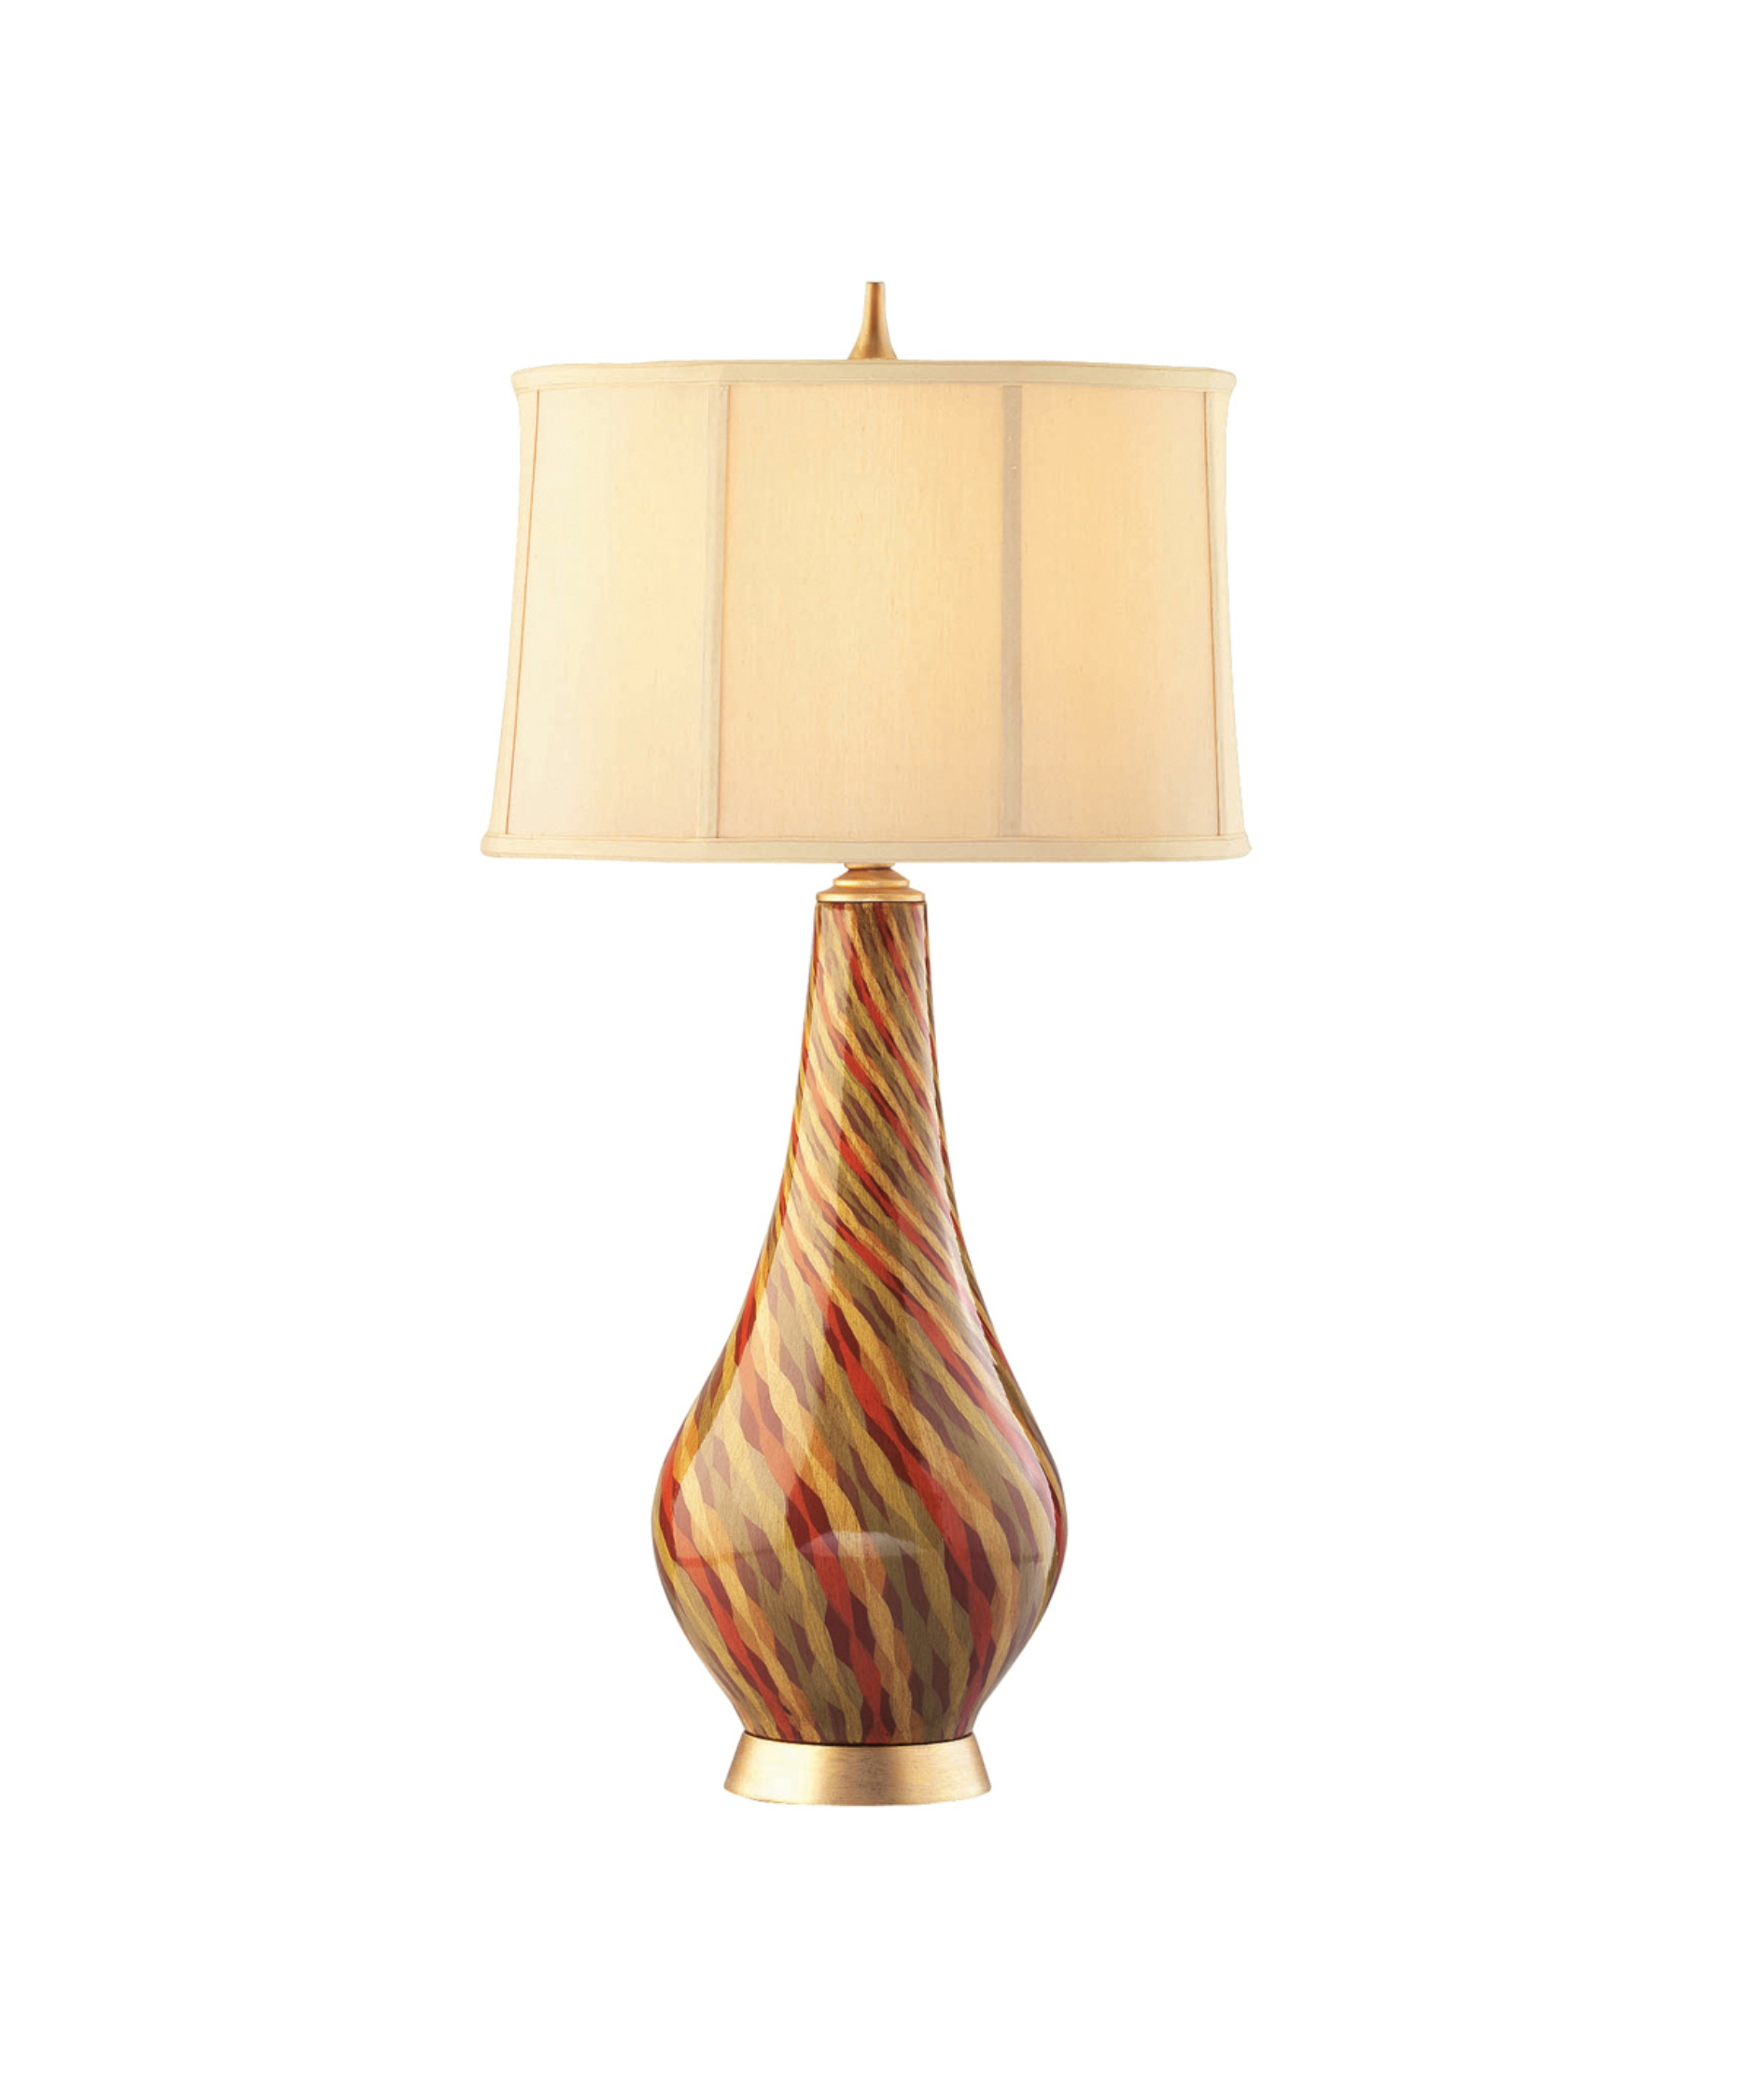 antique table lamps photo - 7